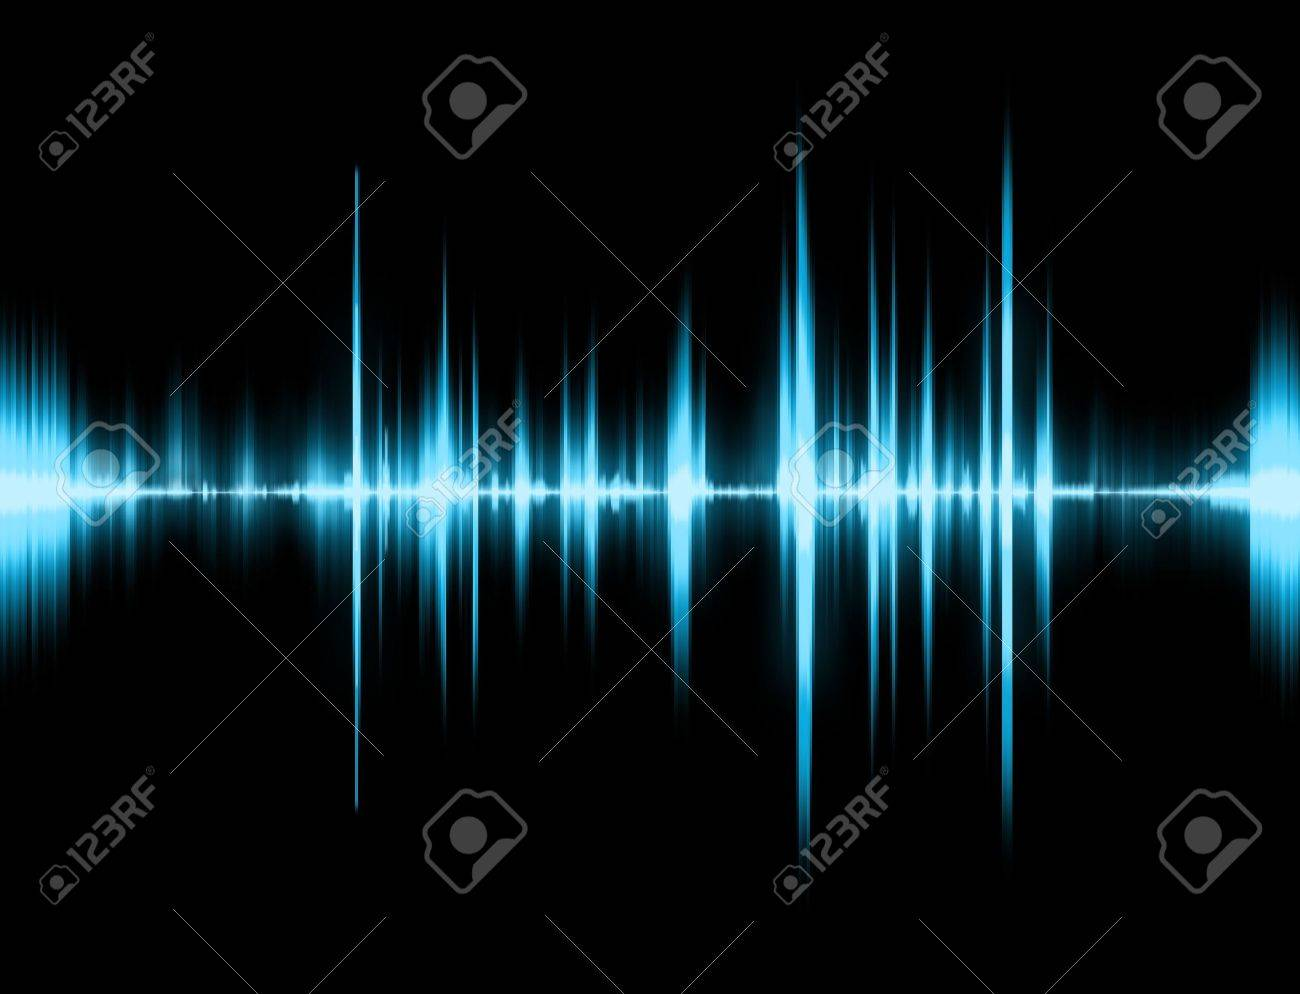 Graphic Of A Digital Sound On Black Bottom Stock Photo, Picture ...